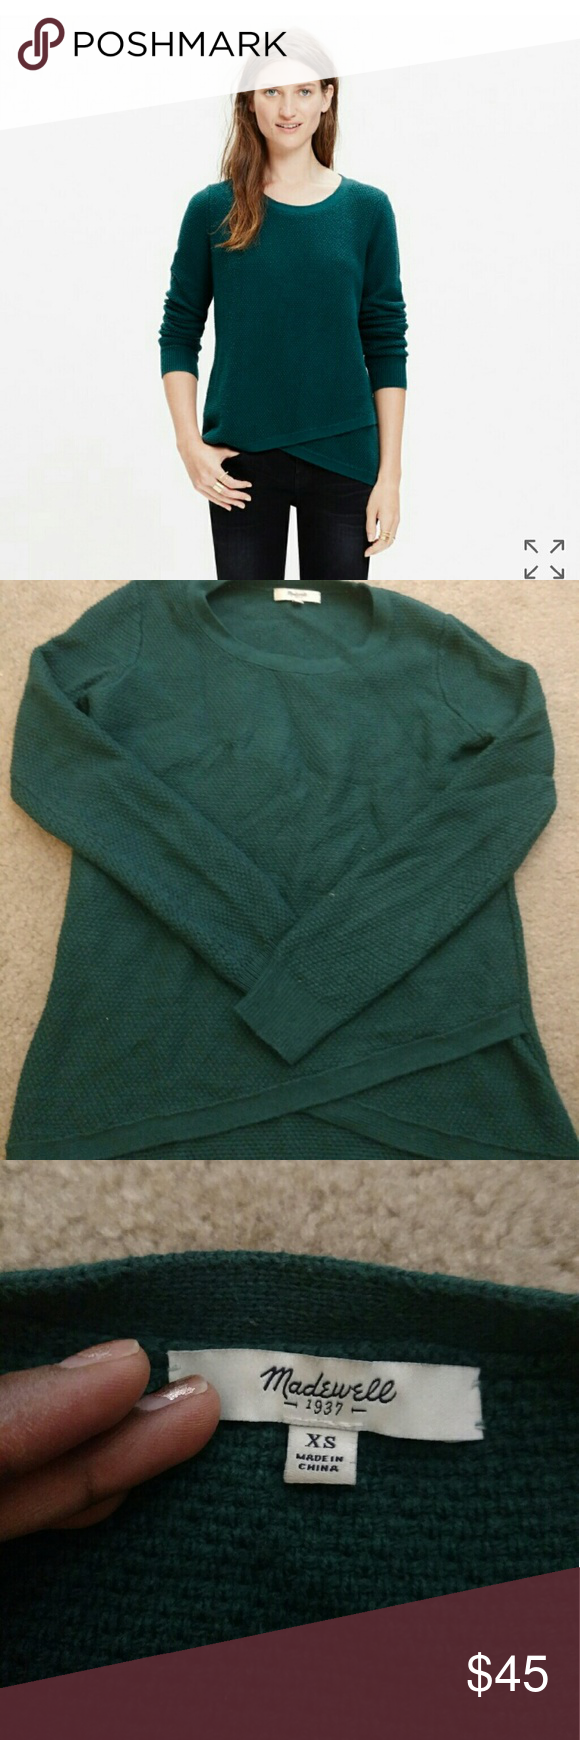 Madewell Feature Pullover Sweater This Madewell sweater is a deep emerald green color, with a cross over hem in the front. Its very warm, and fits like a true XS. It was too tight in the arms and shoulders for me. No longer sold. Smoke free and pet free home. Bundles welcome Madewell Sweaters Crew & Scoop Necks